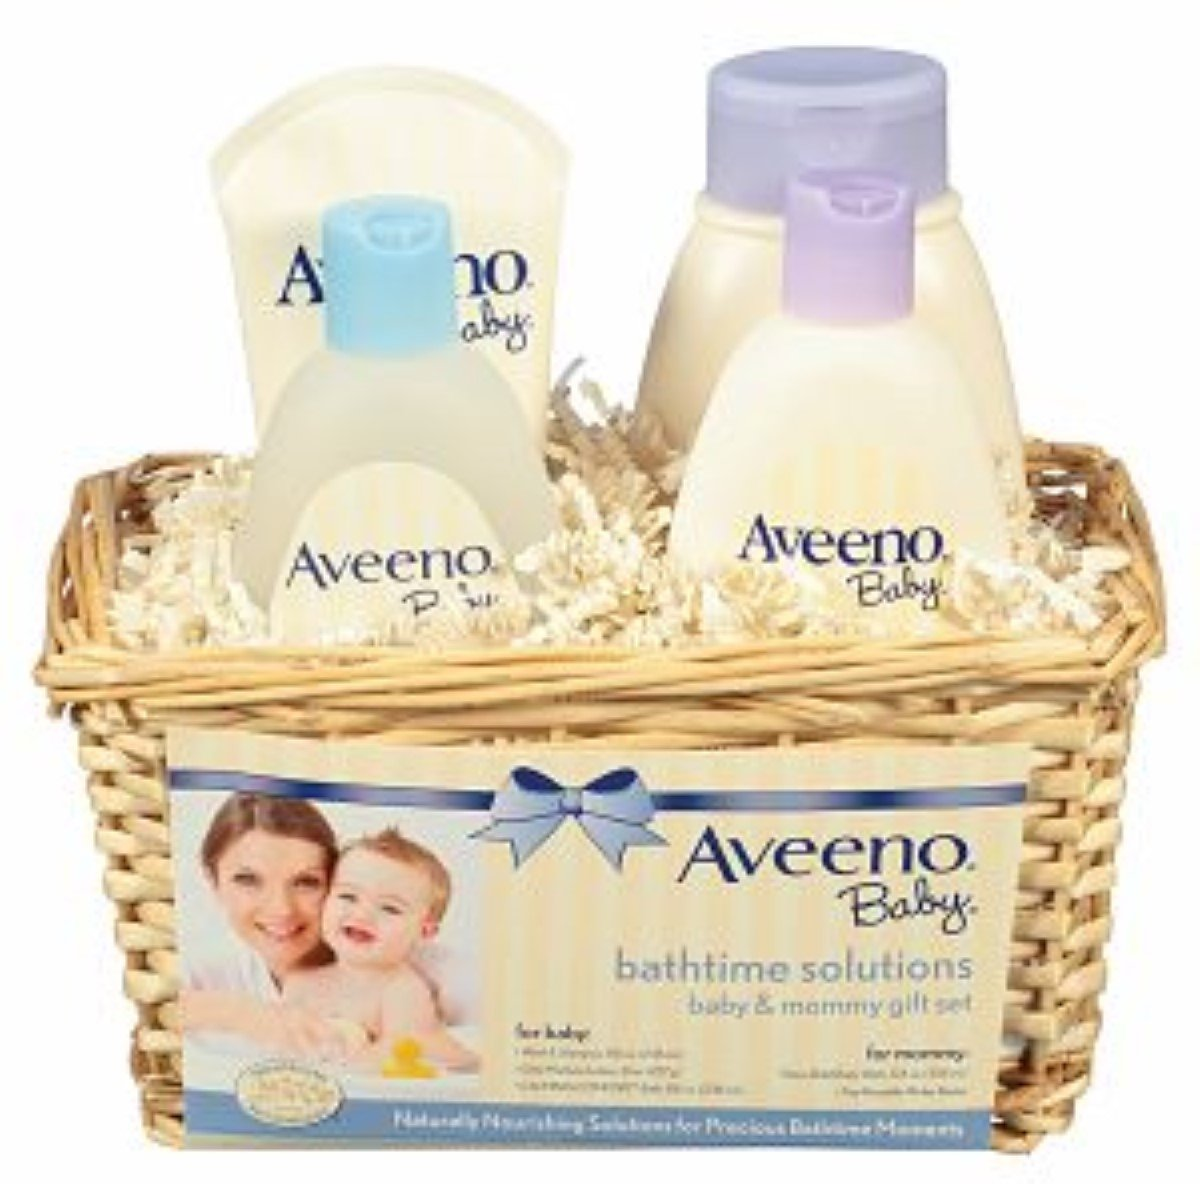 AVEENO Baby Daily Bathtime Solutions Gift Set 1 ea (5 Pack)